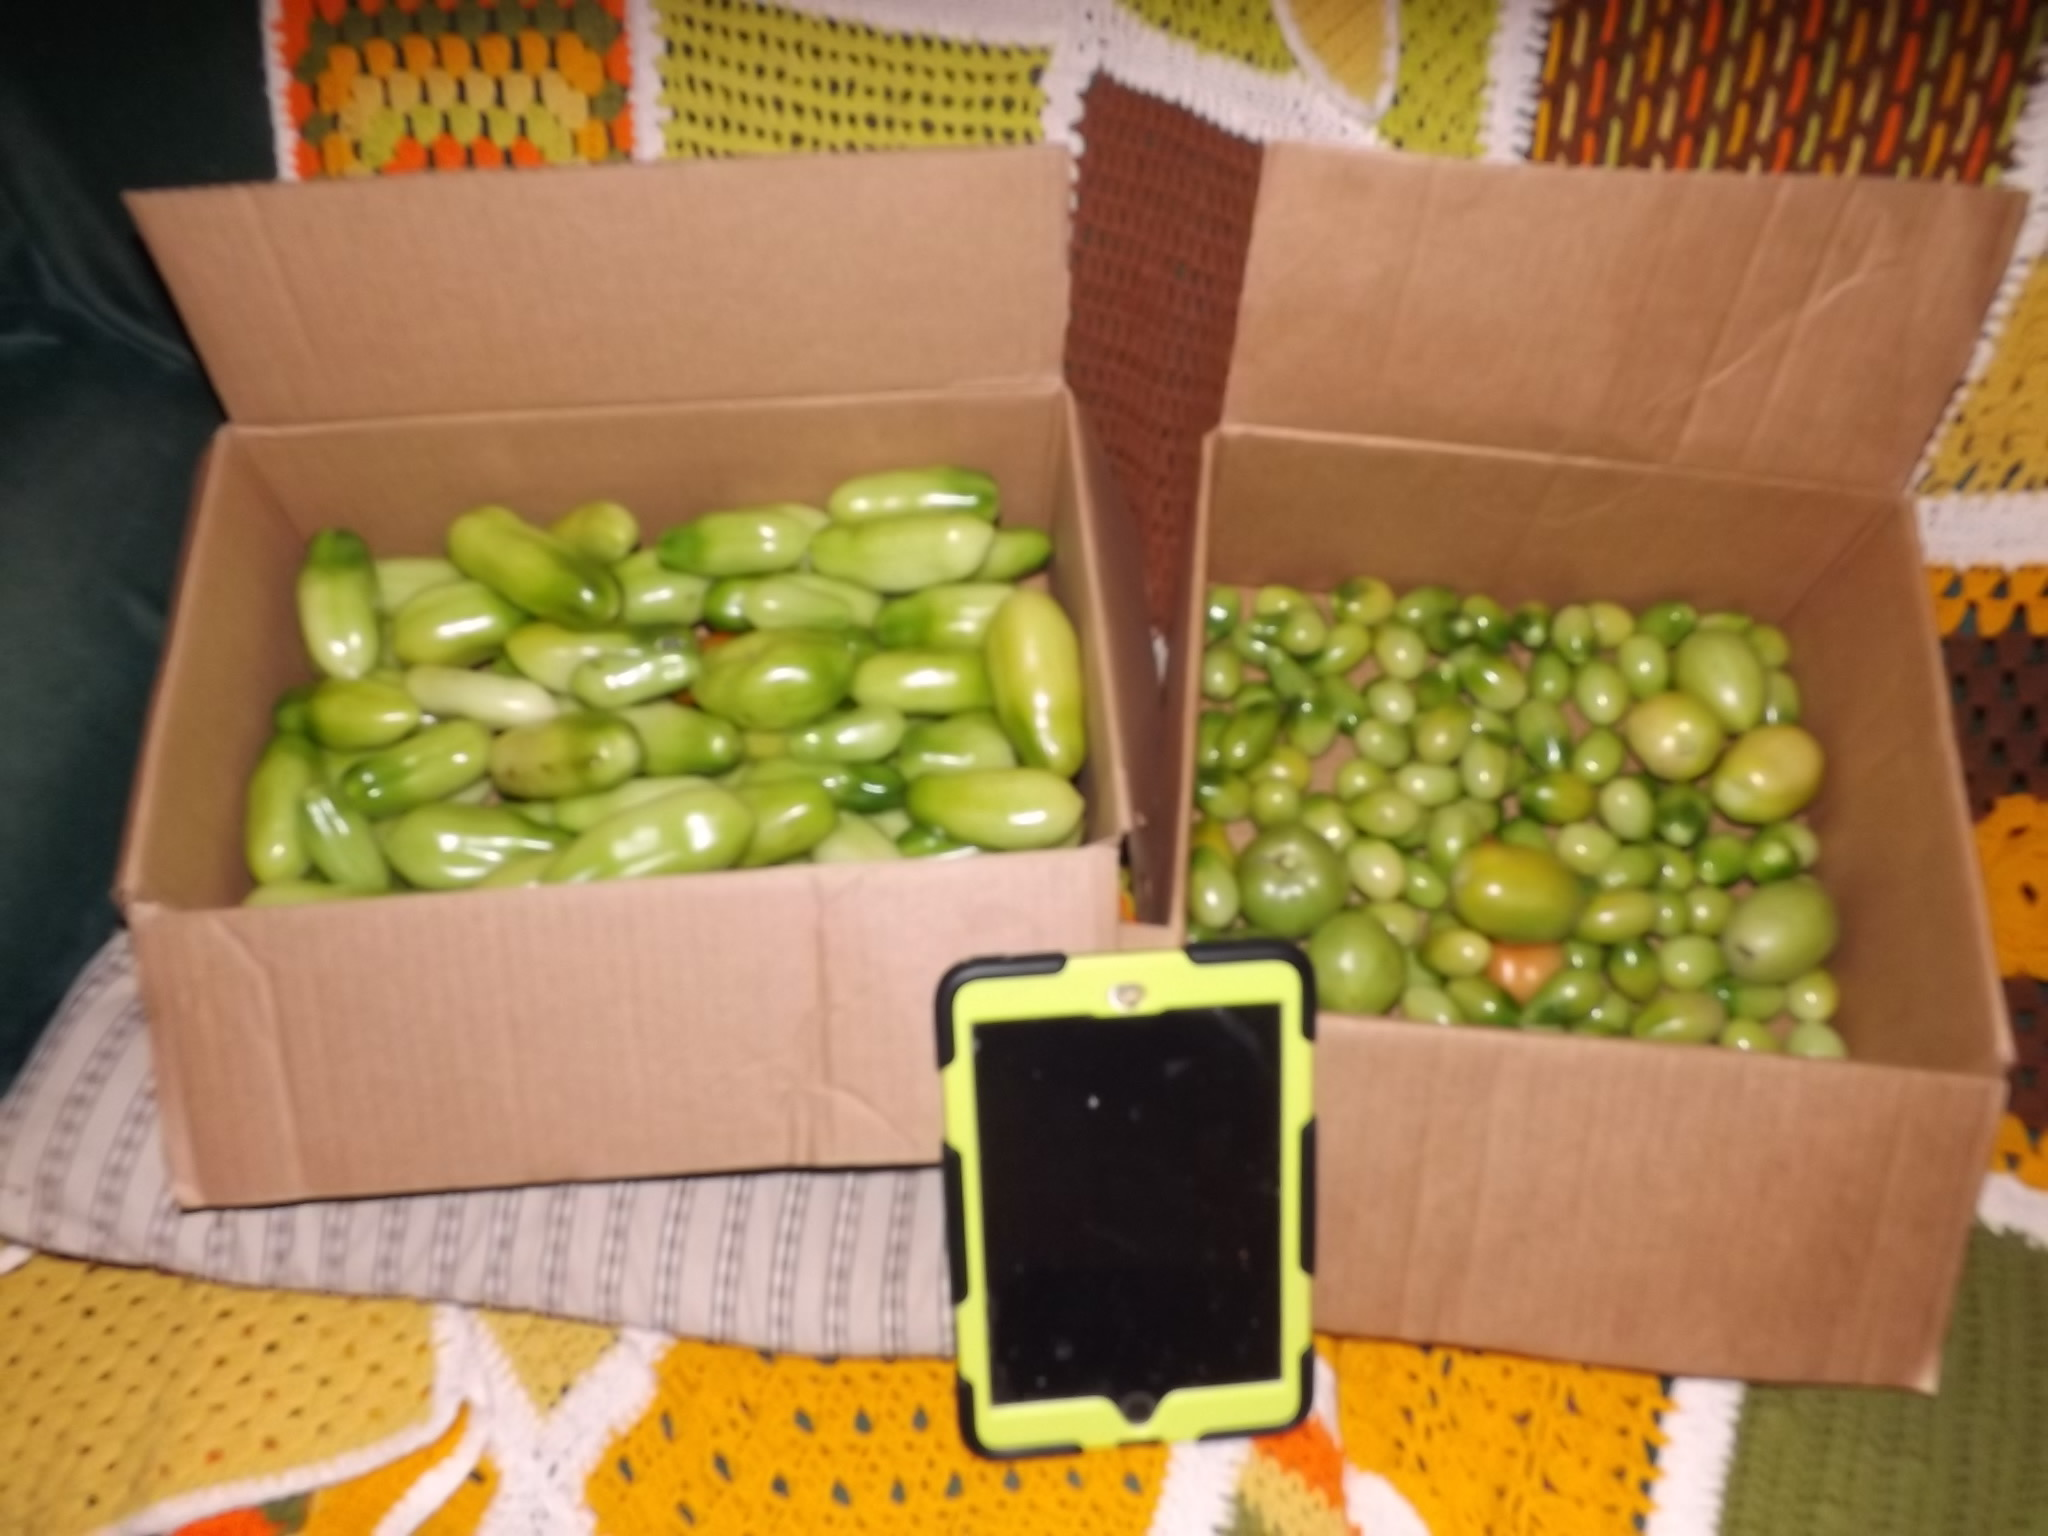 two boxes of green tomatoes